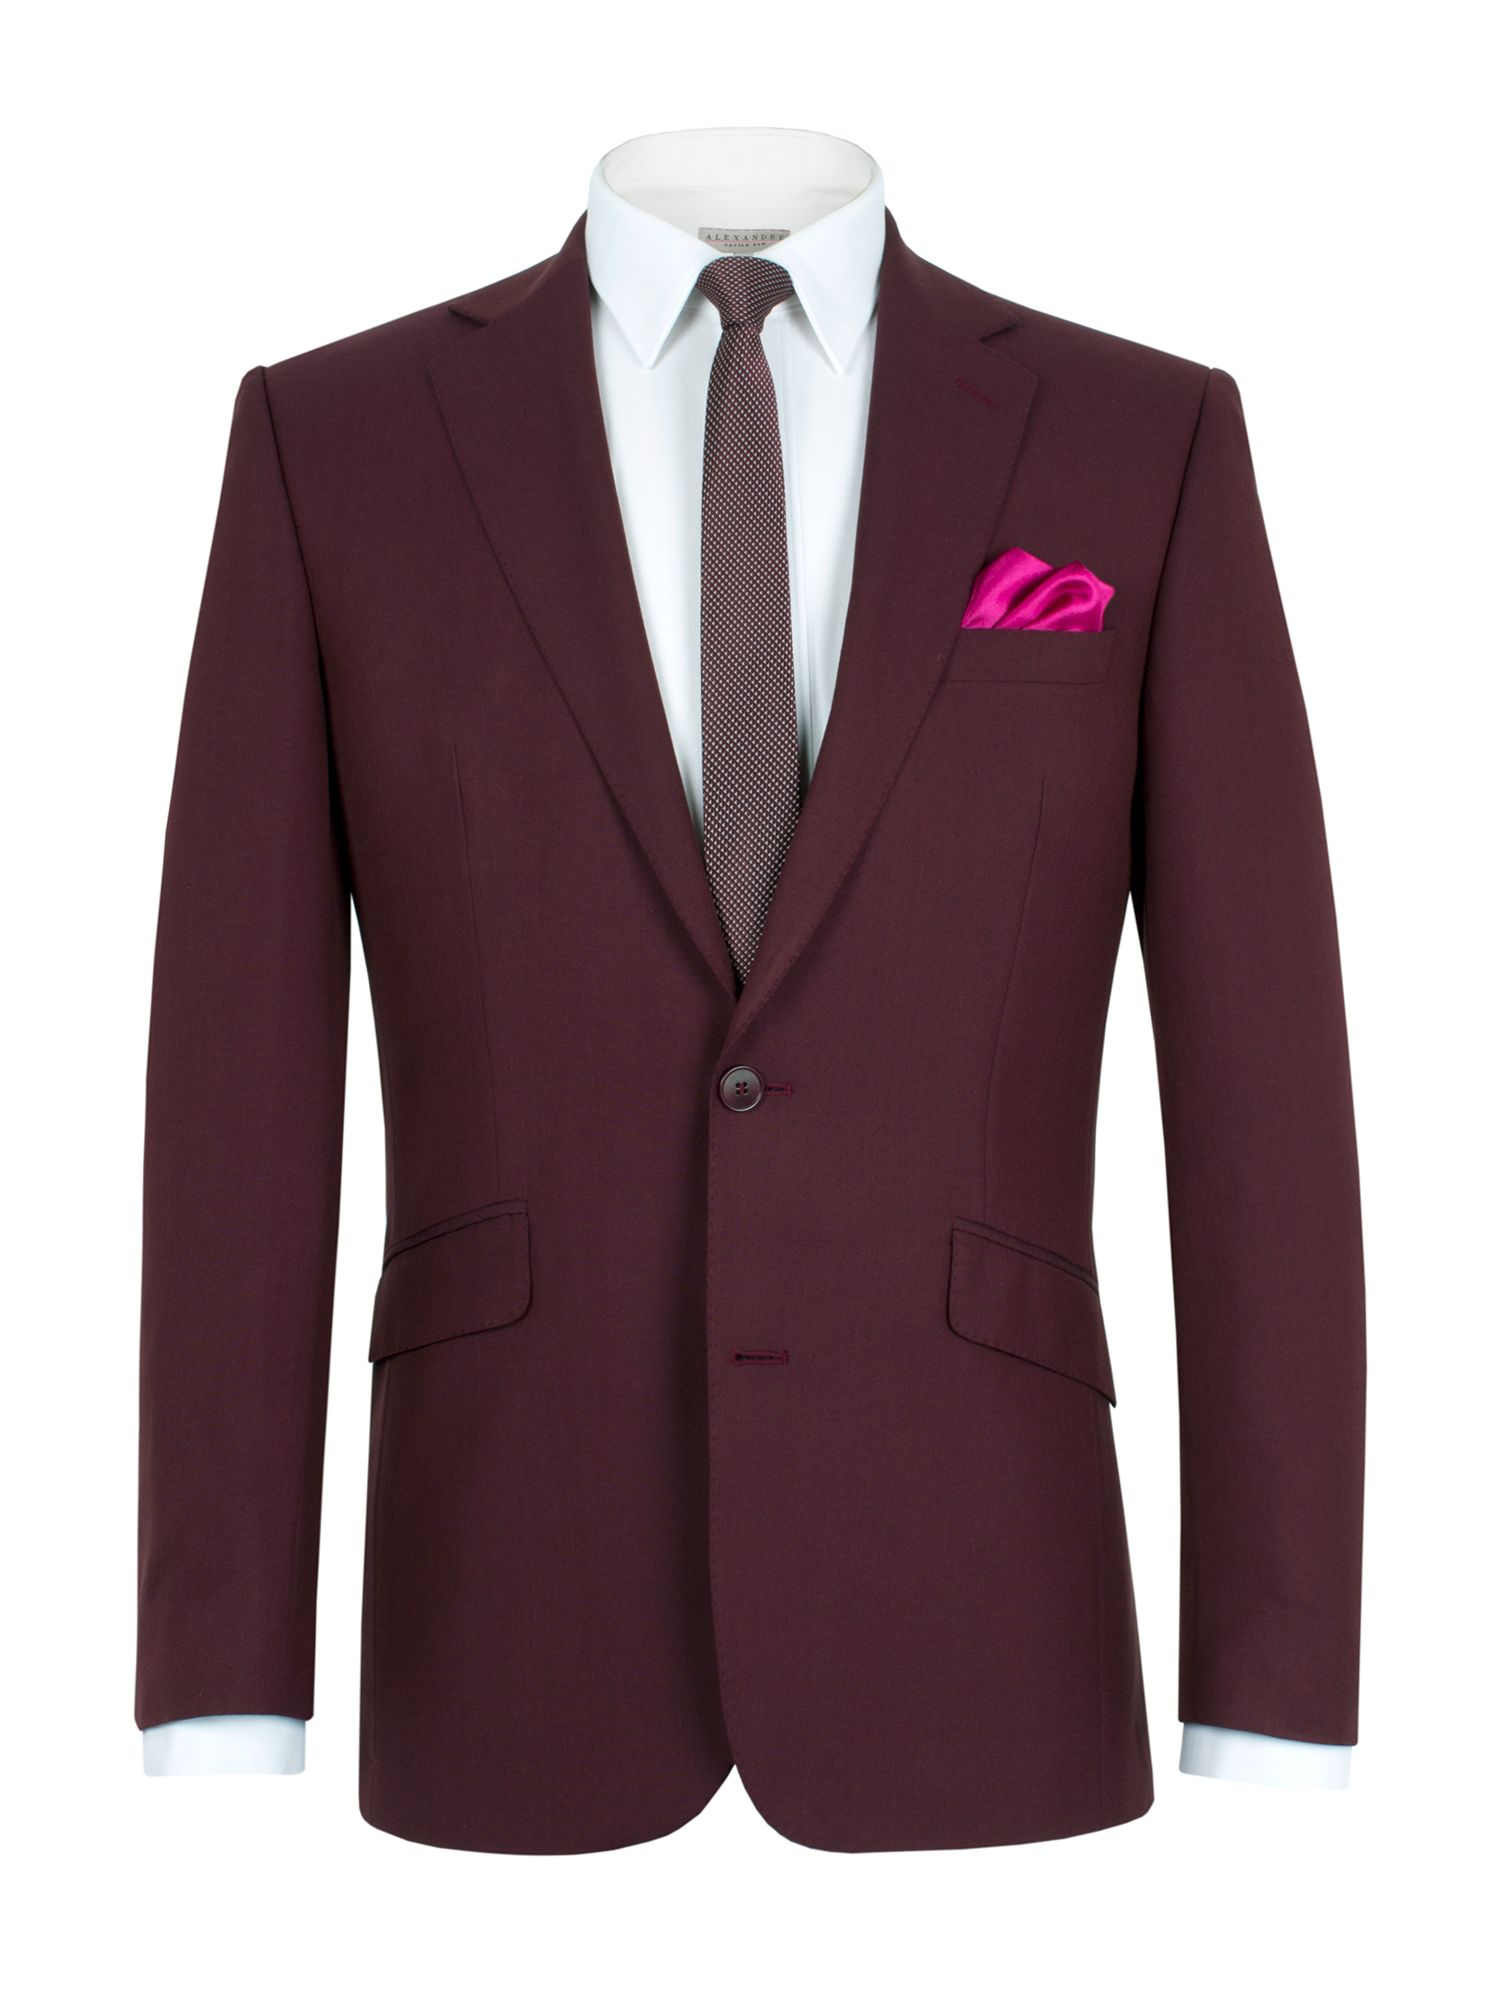 Tonic notch single breasted suit jacket